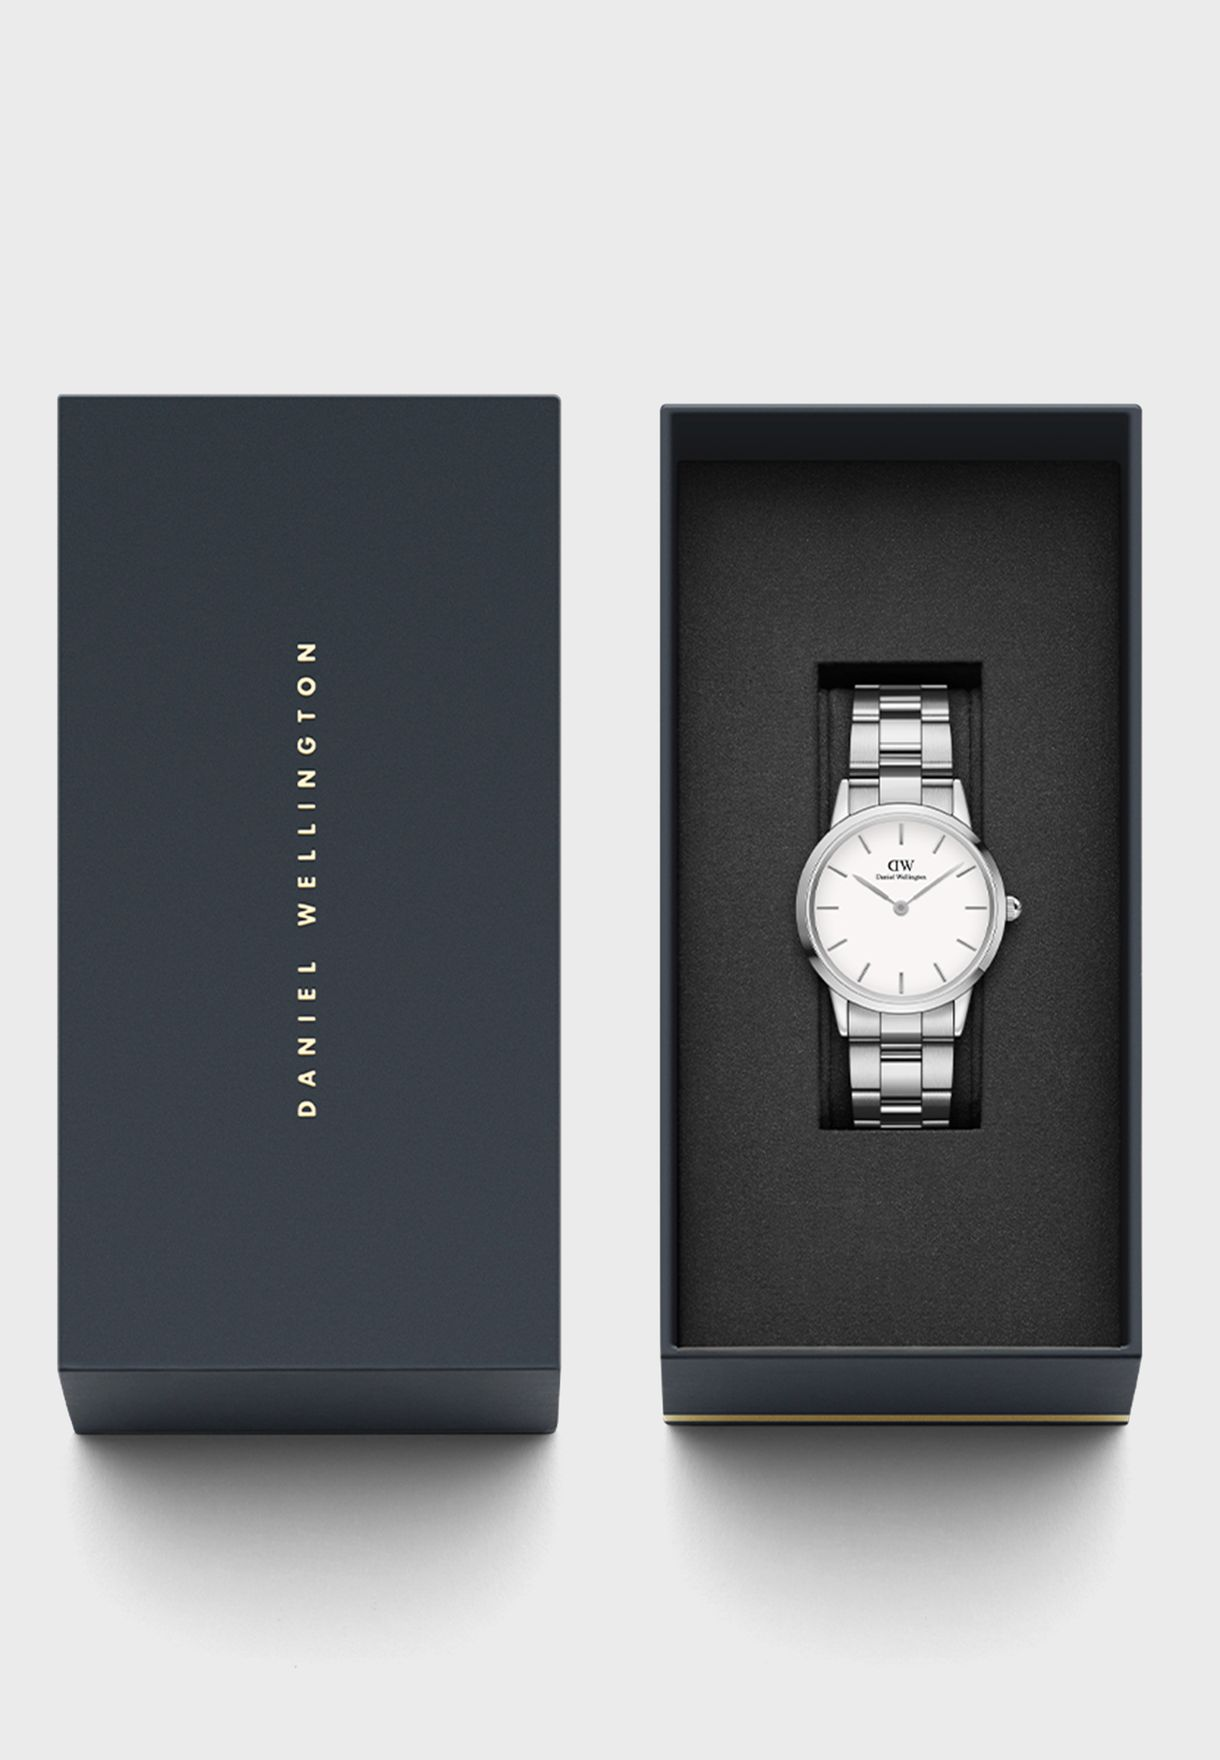 Iconic Link 32 Analog Watch